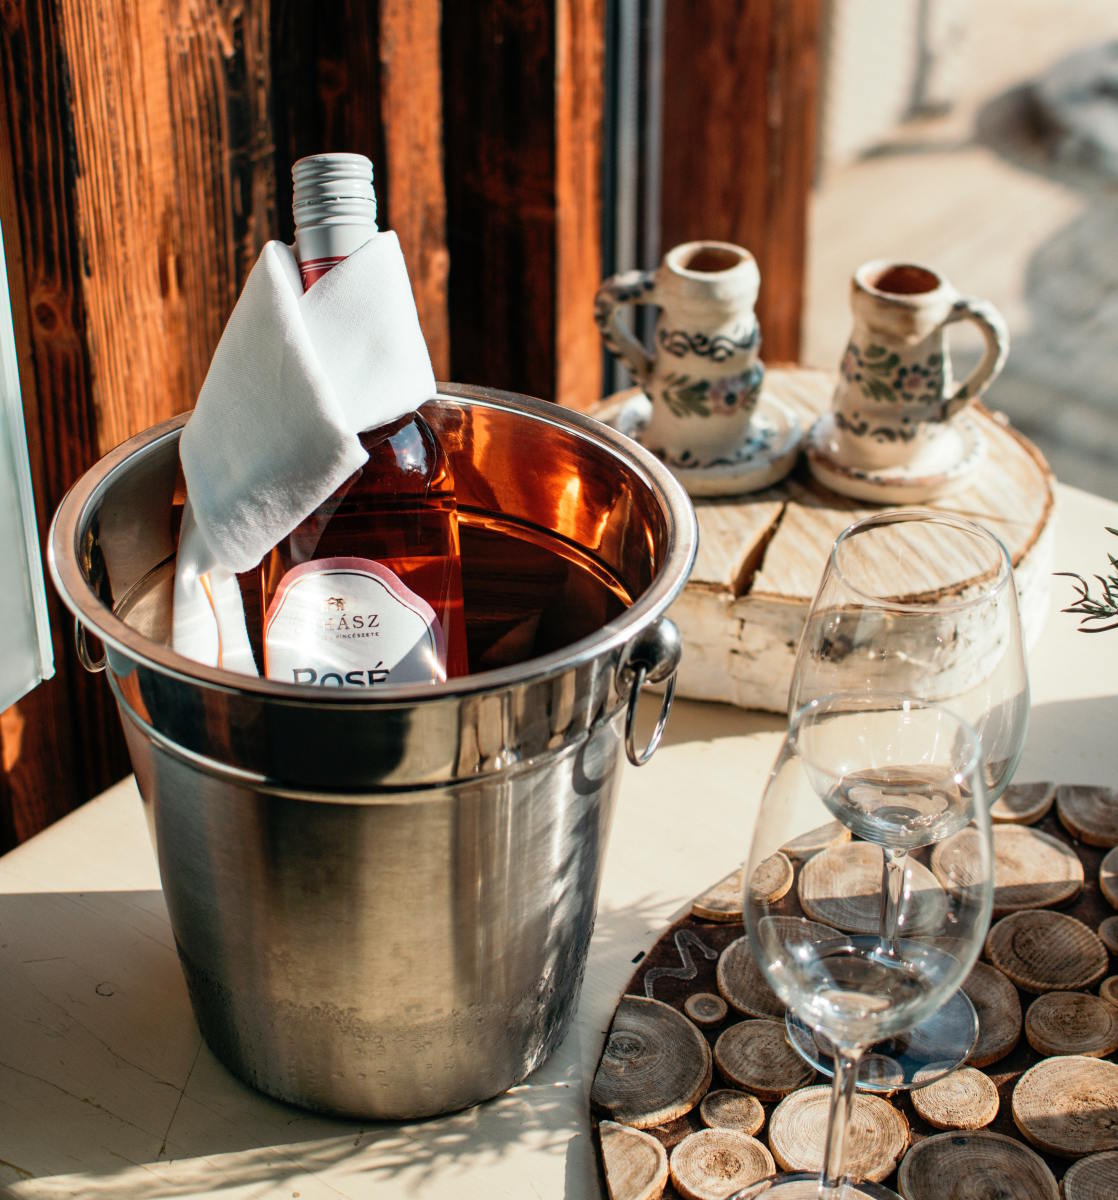 Once looked down on, rosé wine has become the day drink of choice. We like ours organic.